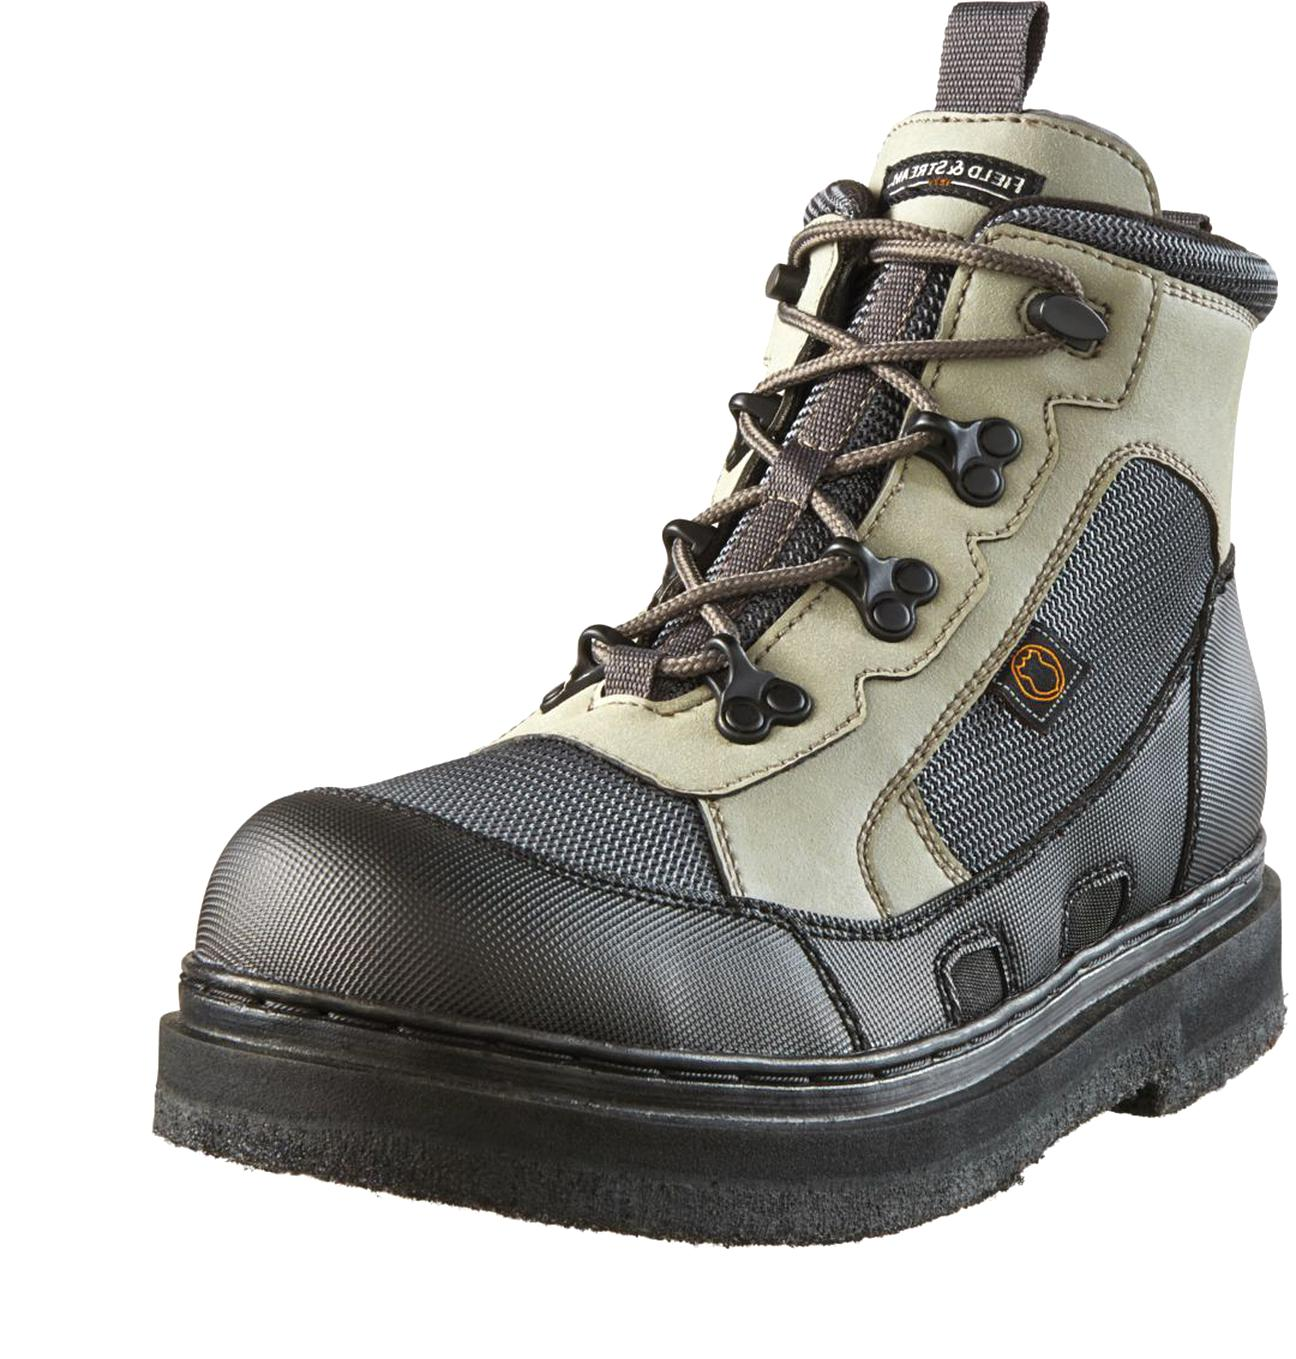 wading boots for sale